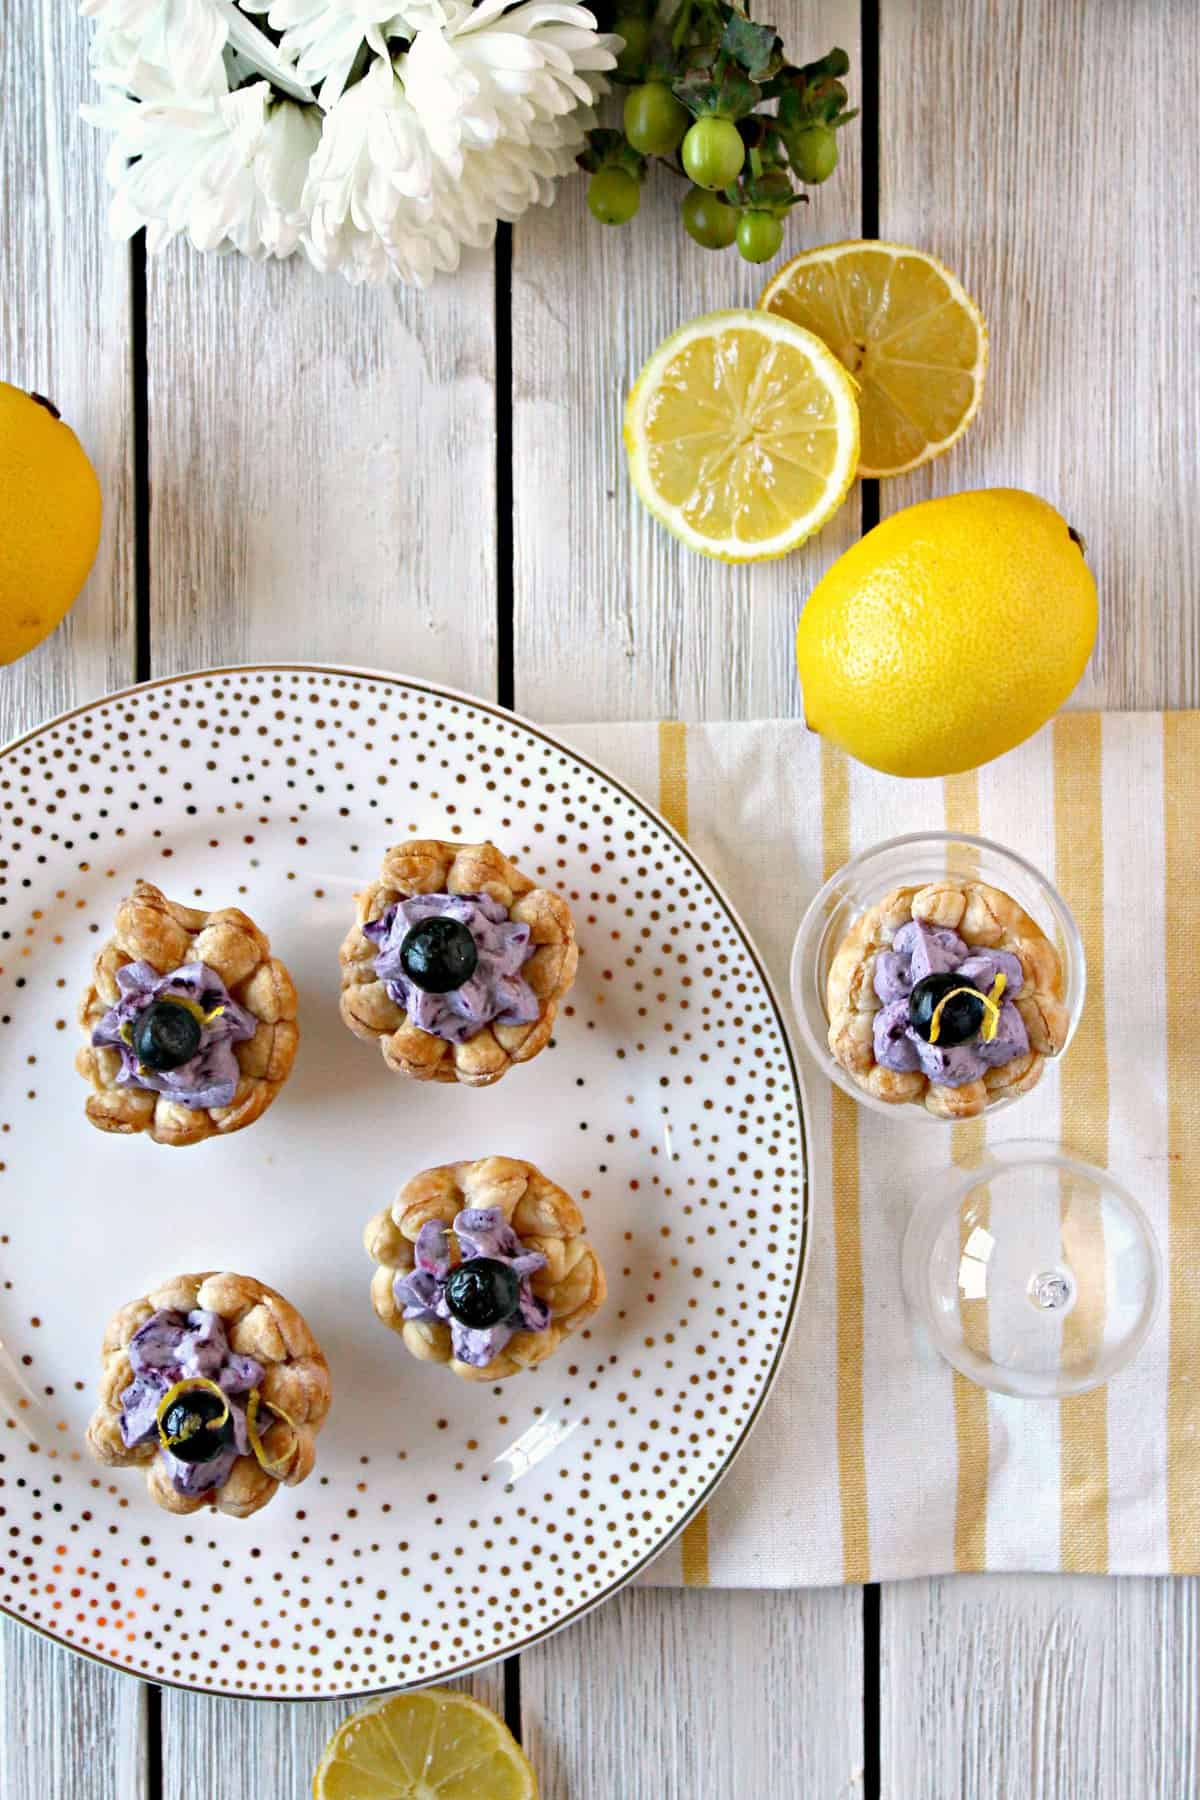 These sweet blueberry puff pastry blossoms have a hint of lemon for a fresh, fruity zing